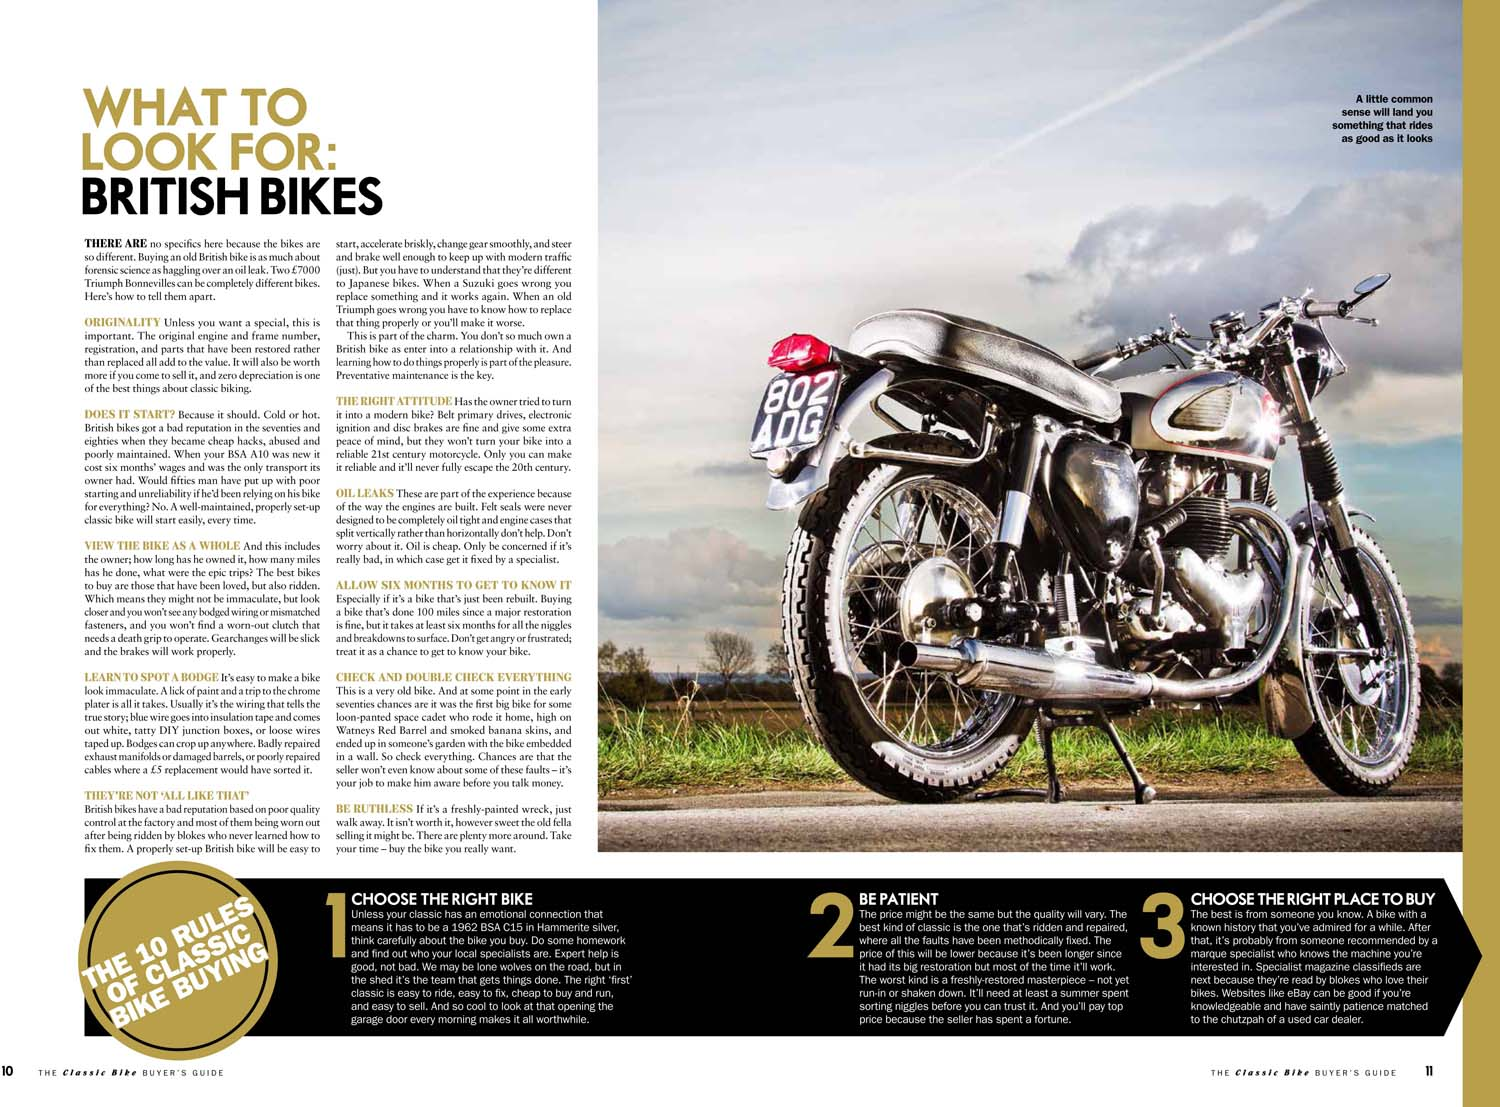 What-to-look-for-British-bikes